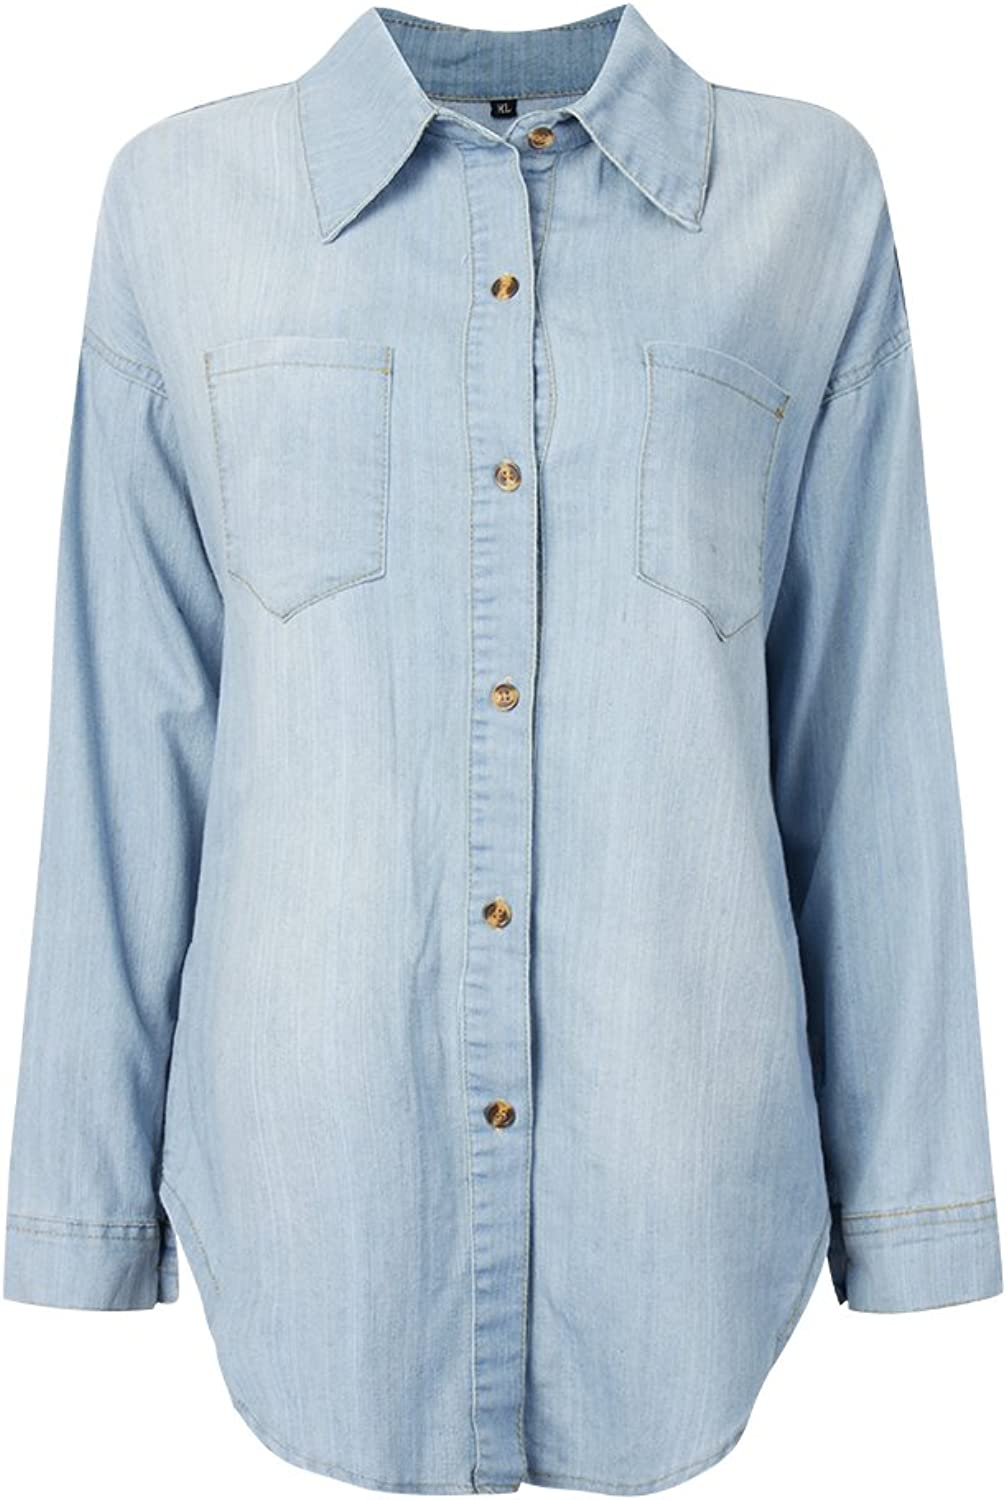 Casual Loose Back Zipper Button Denim Blouse For Women